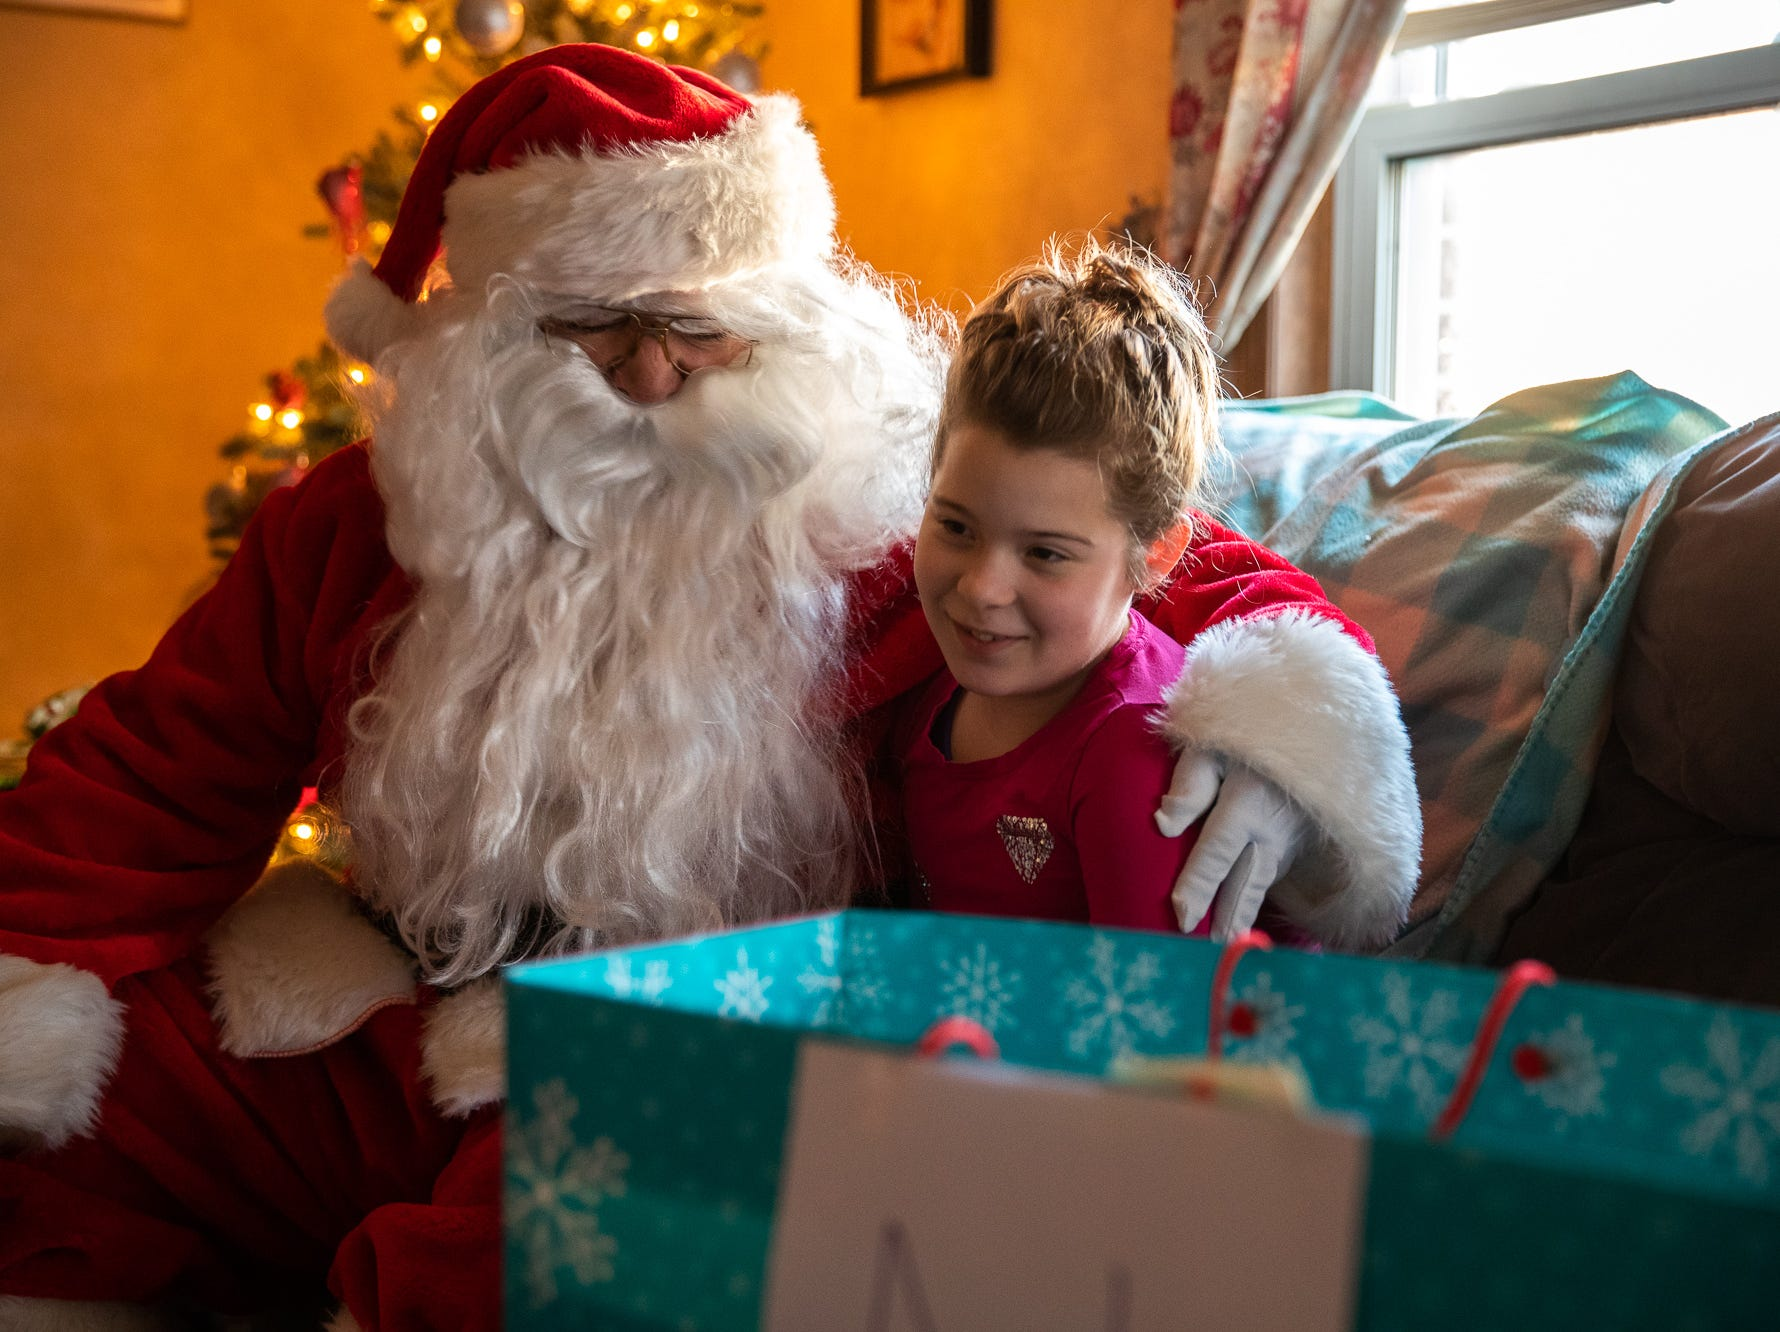 Kiara, who will be 10 tomorrow, sits with Santa, played by firefighter Wayne Reid, during the S.A.V.E.S Project Santa, Saturday, Dec. 22, 2018, in McSherrystown Borough. The S.A.V.E.S Project Santa donated food, toys, and clothing to 12 local families in need.